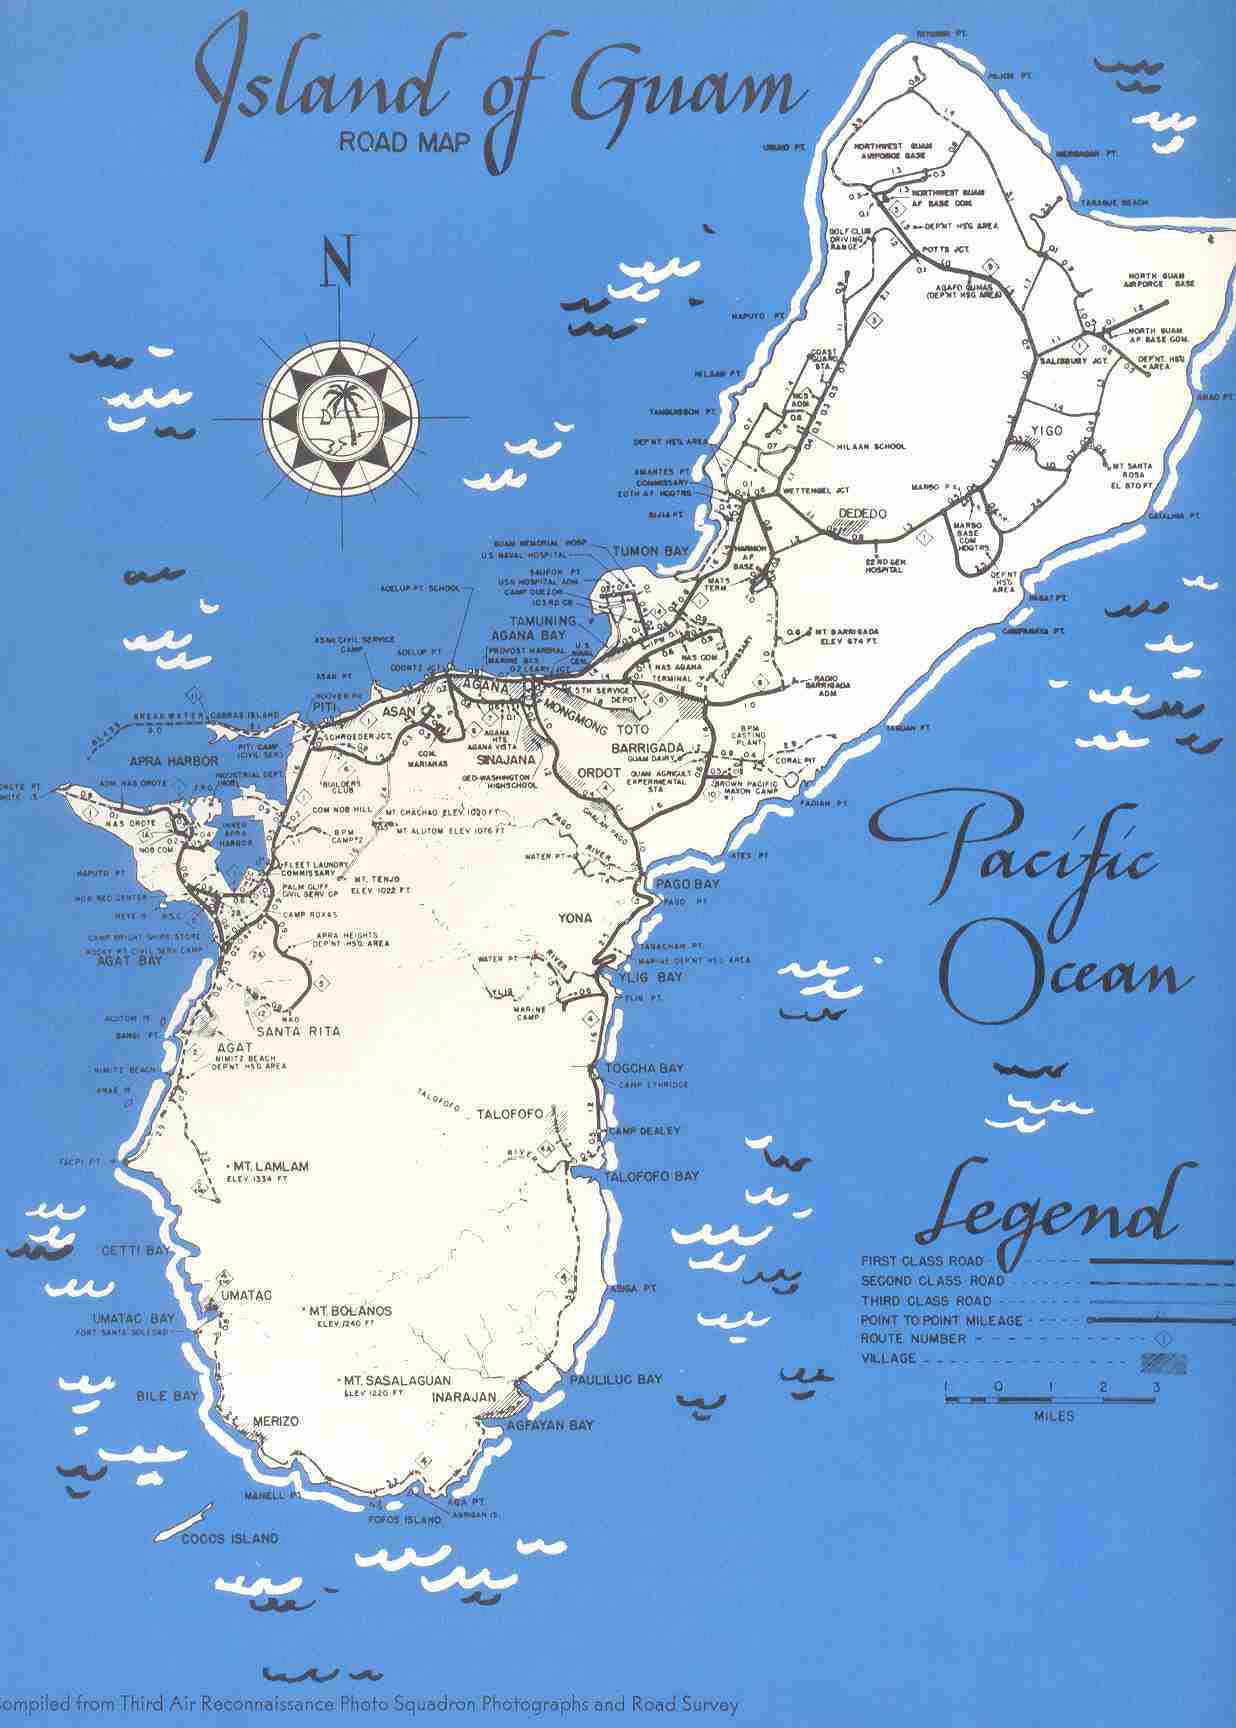 Guam Location On World Map Pictures to Pin on Pinterest PinsDaddy